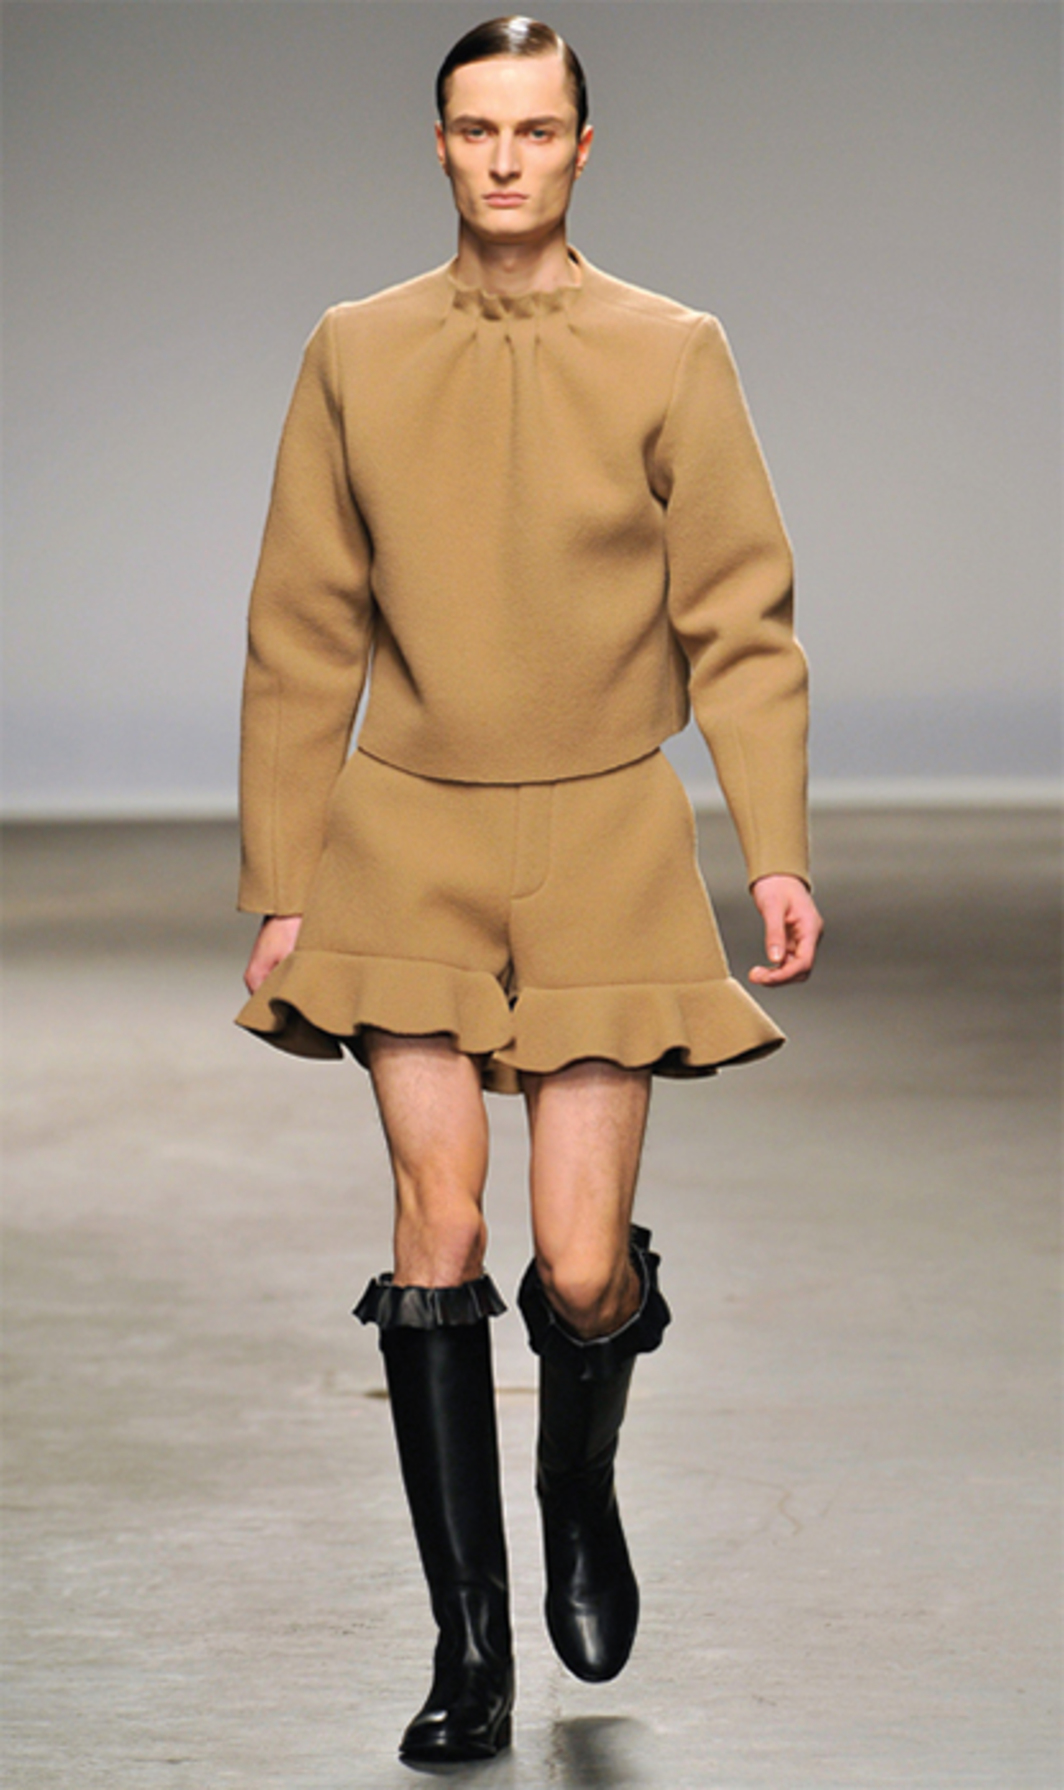 *Look from J. W. Anderson fall/winter 2013–14 men's collection, The Old Sorting Office, London, January 9, 2013.*